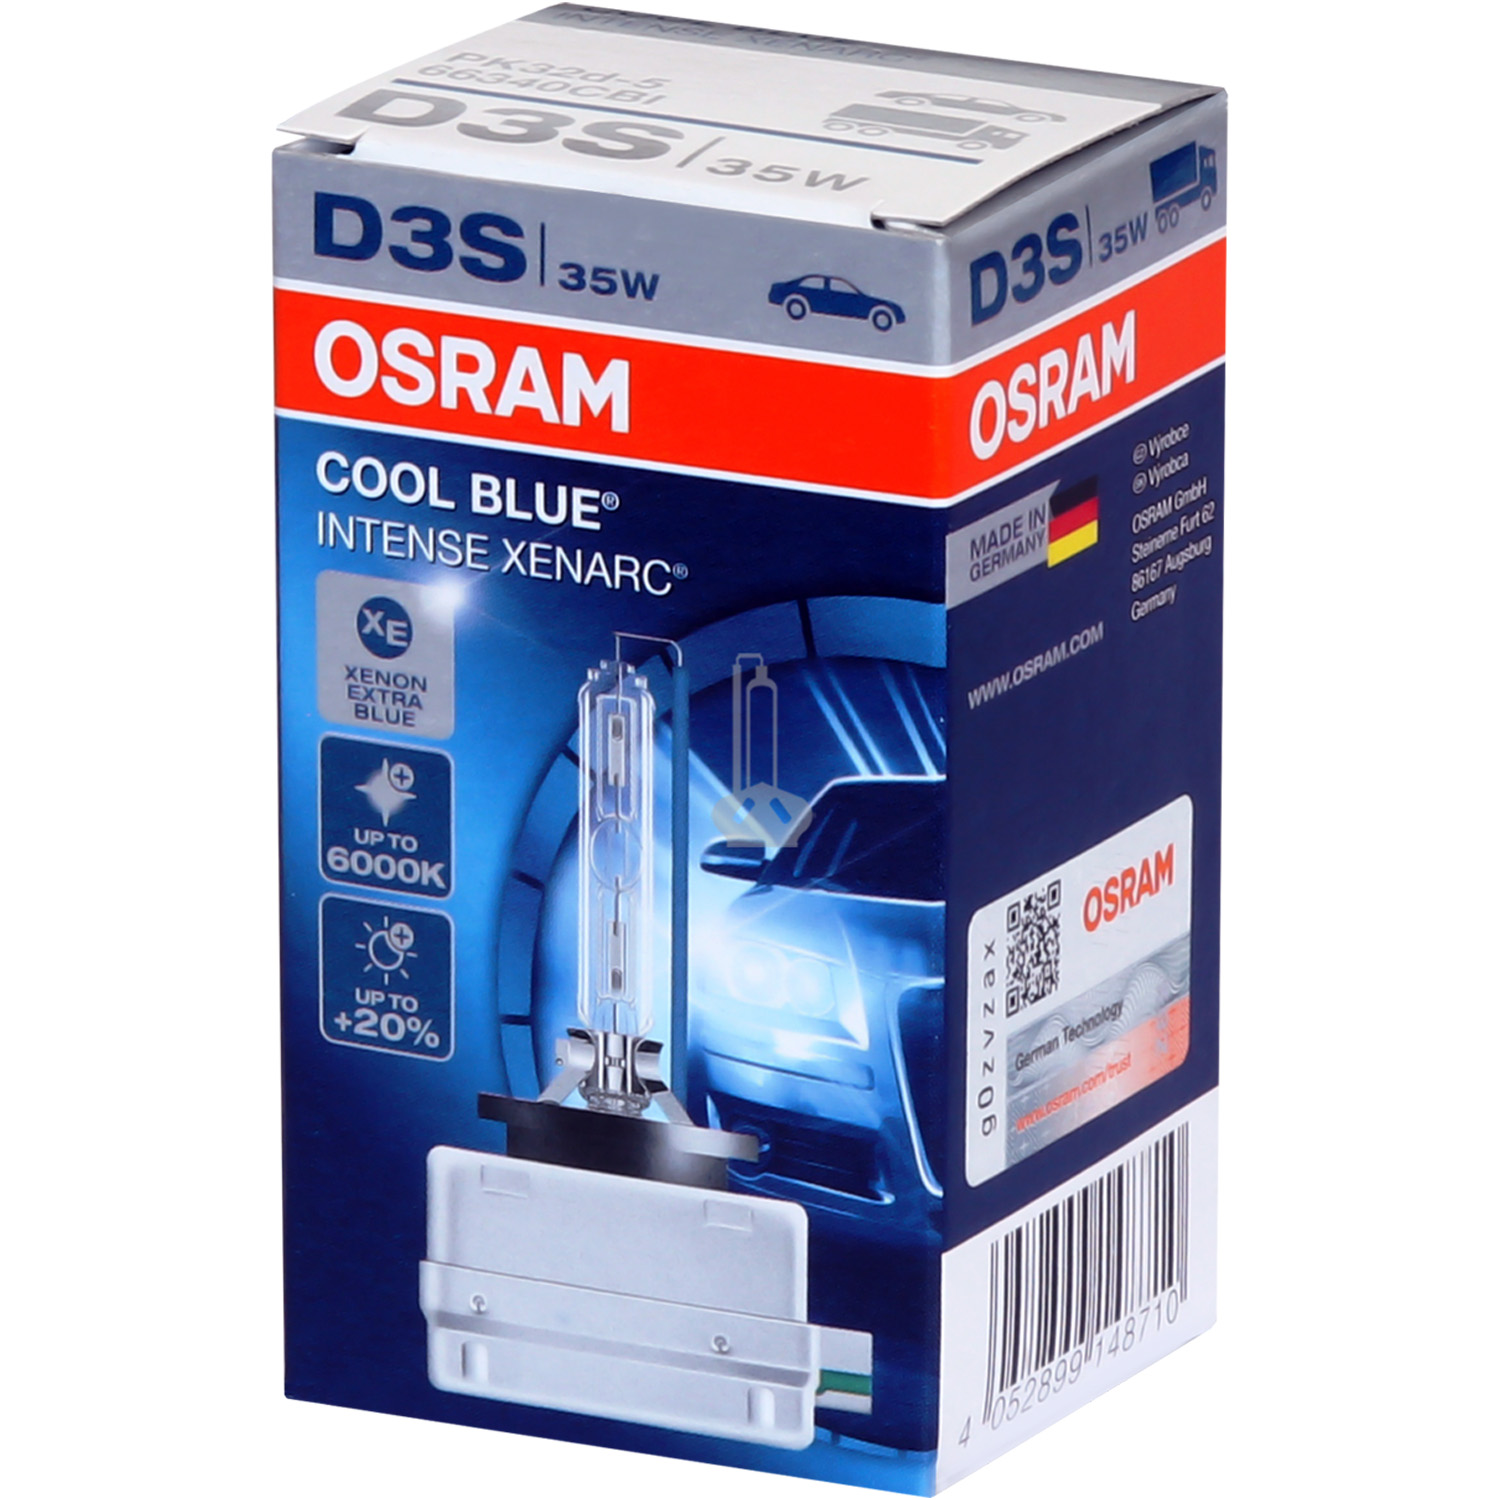 osram d3s 66340cbi xenarc cool blue intense xenon brenner. Black Bedroom Furniture Sets. Home Design Ideas